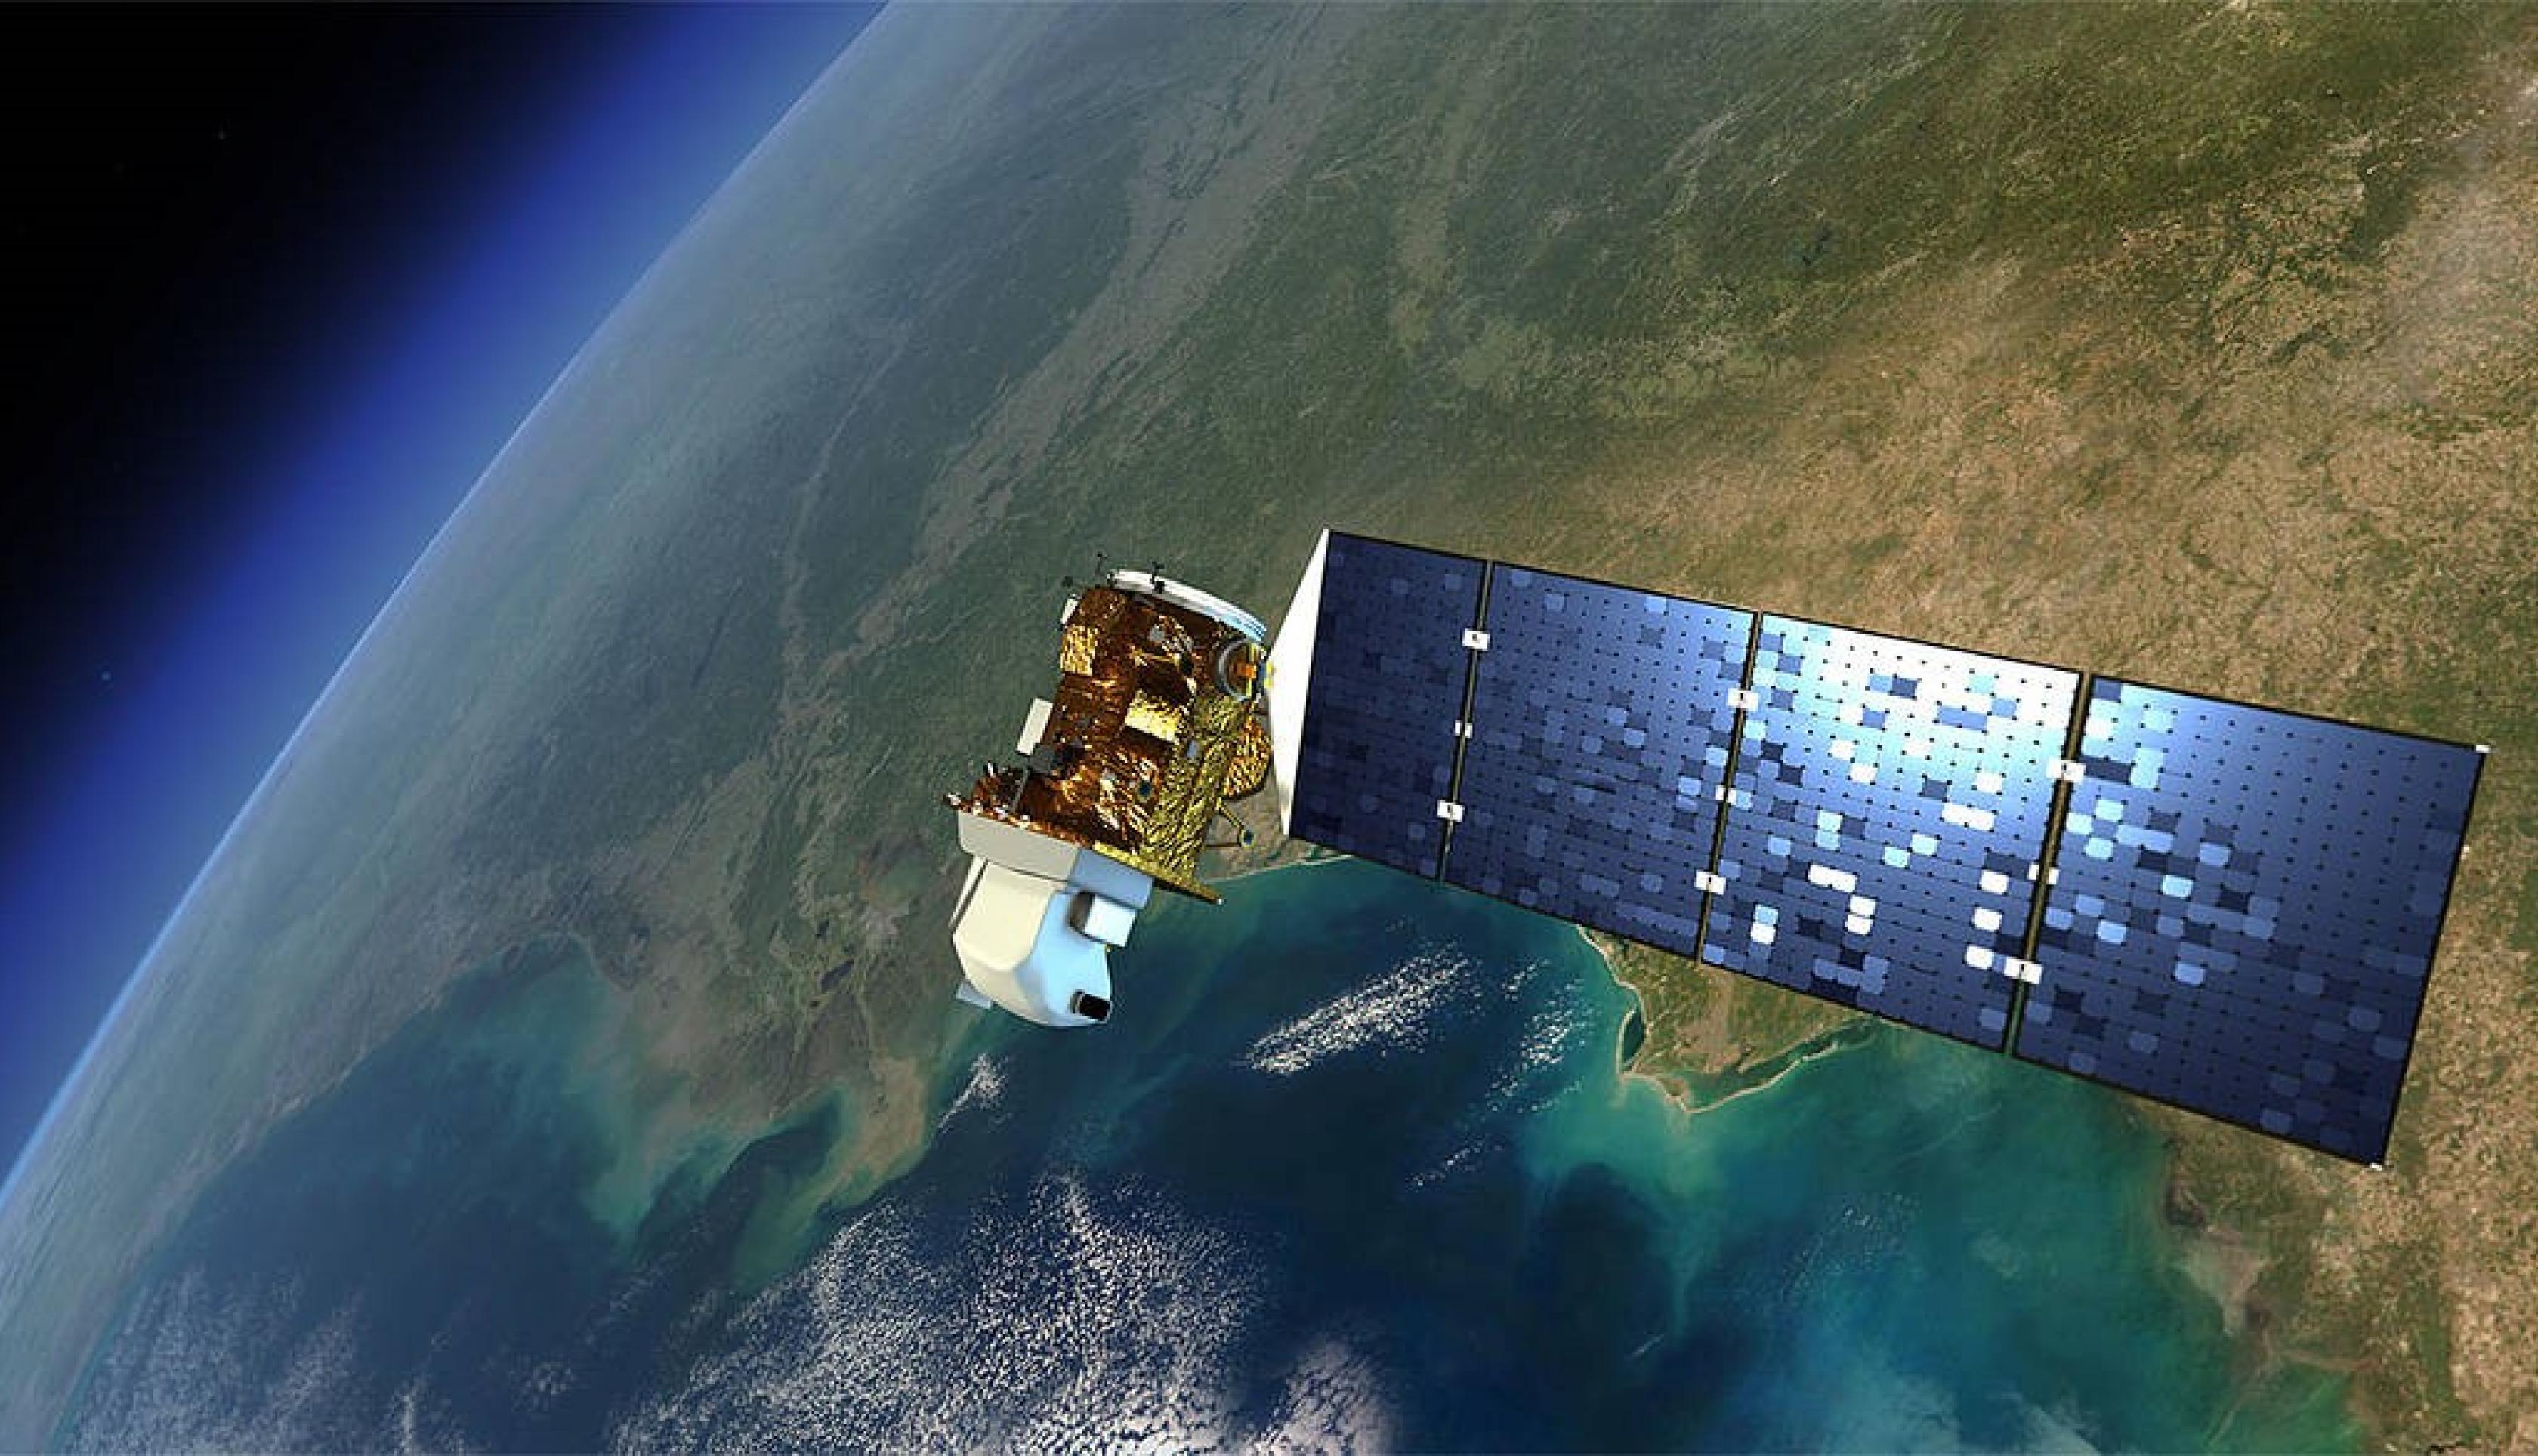 Landsat-8 collects frequent global multispectral imagery of Earth's surface, adding to the continuous Earth remote sensing data set created by previous Landsat missions. The data from Landsat spacecraft constitute the longest existing record of Earth's continental surface on a global basis. Credits: NASA